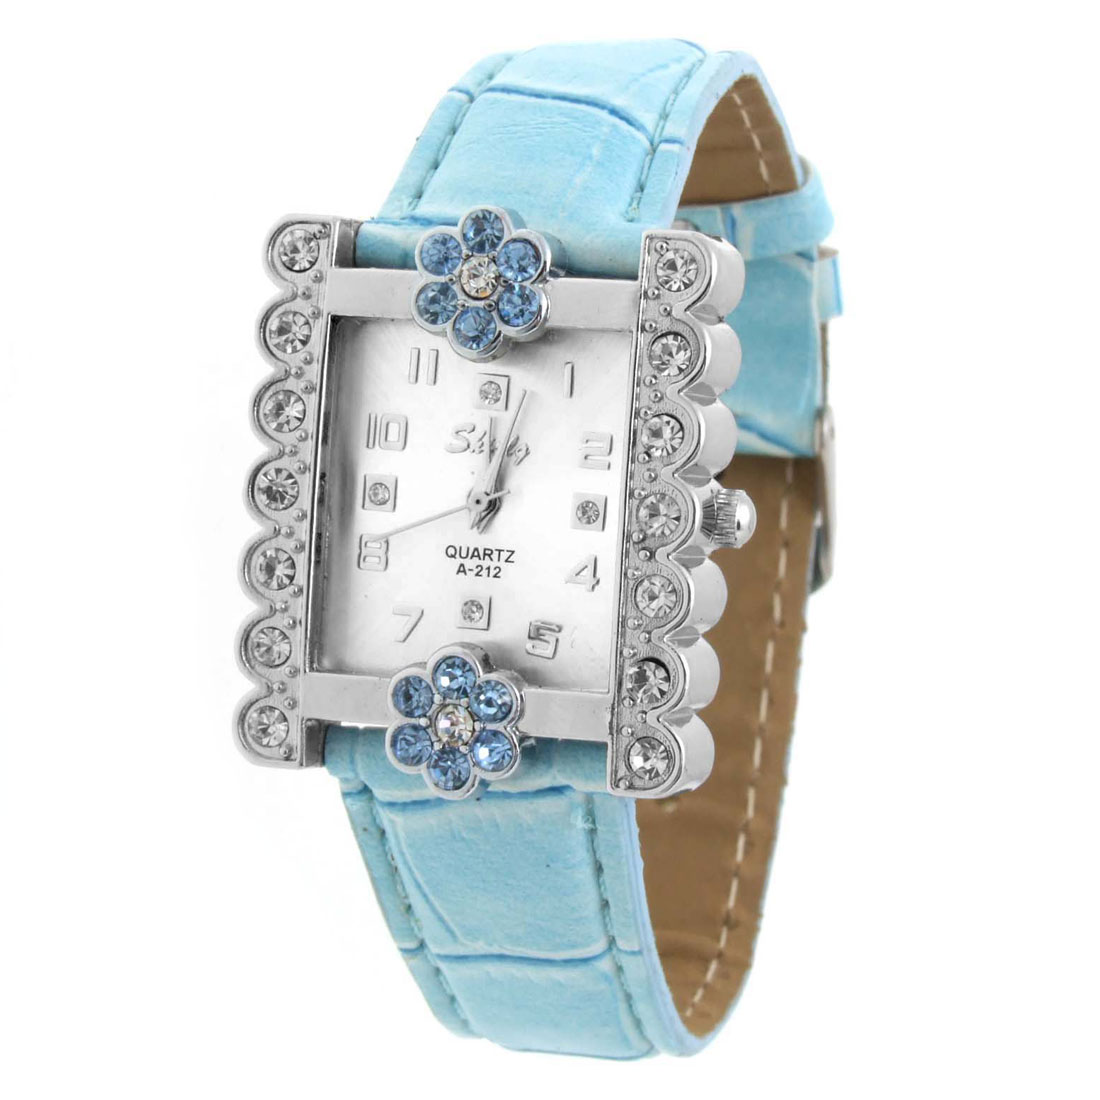 Flower Crystal Wrist Quartz Watch with Skyblue Faux Leather Band